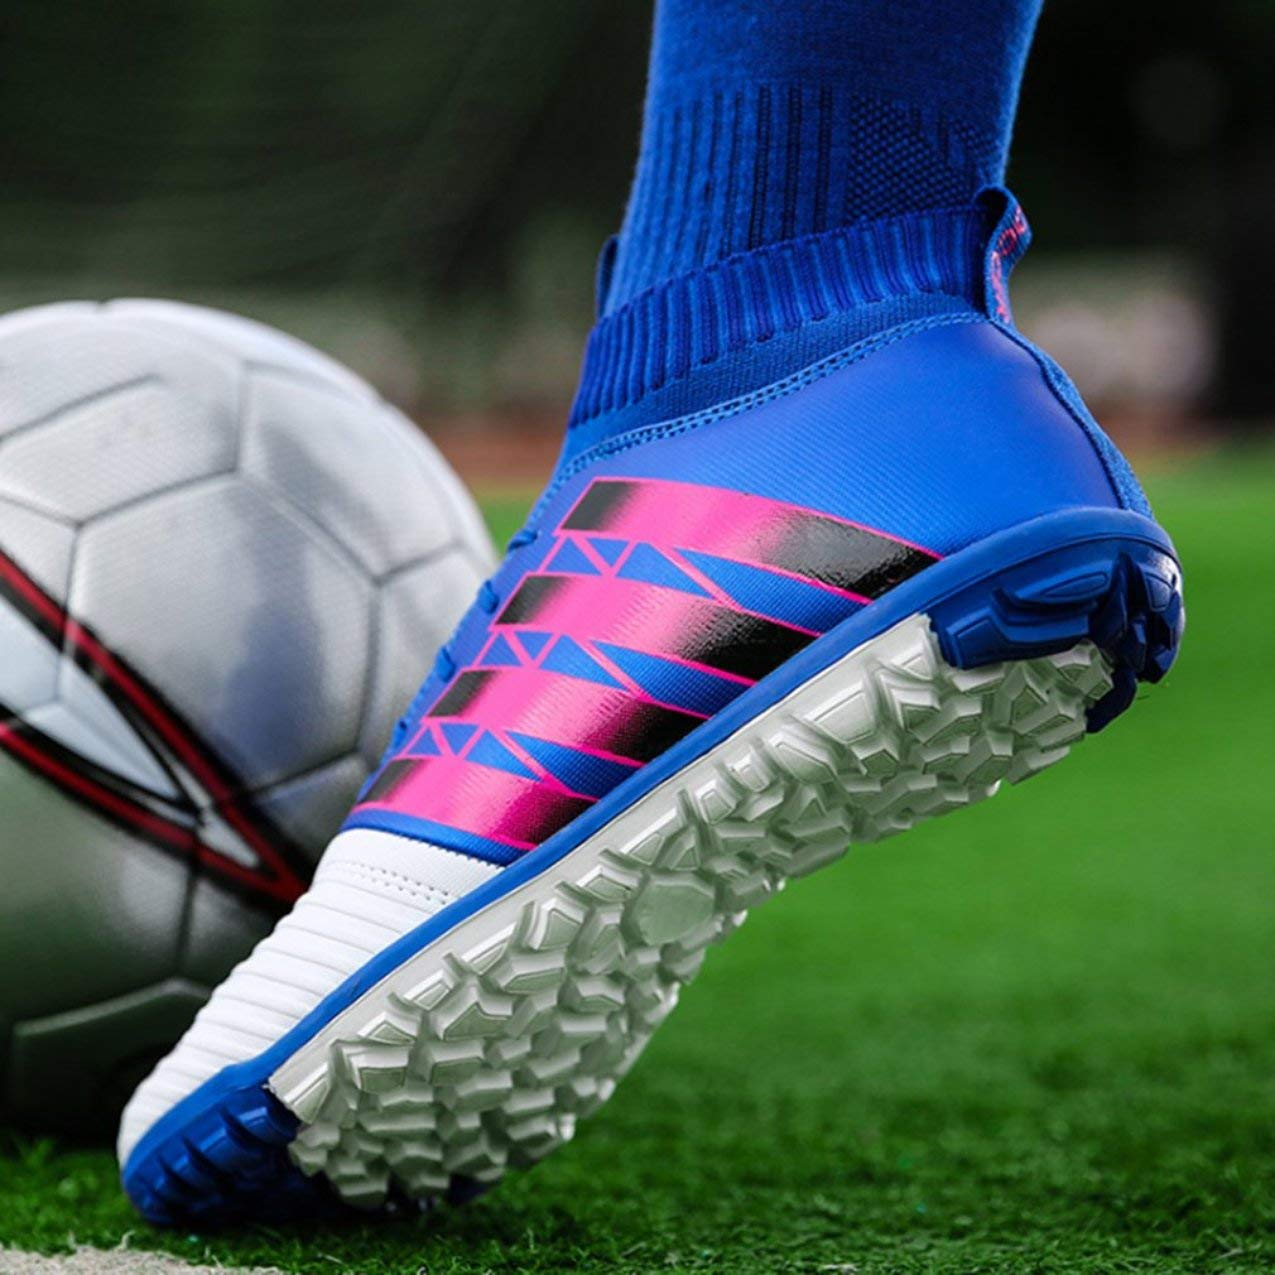 pretty nice 27c77 2aaa8 Redstrong Chaussures de Football Clou cassé Chaussures de Football Anti-dérapant  Chaussures de Sport de Football en Plein air Chaussures Crampons Adultes ...